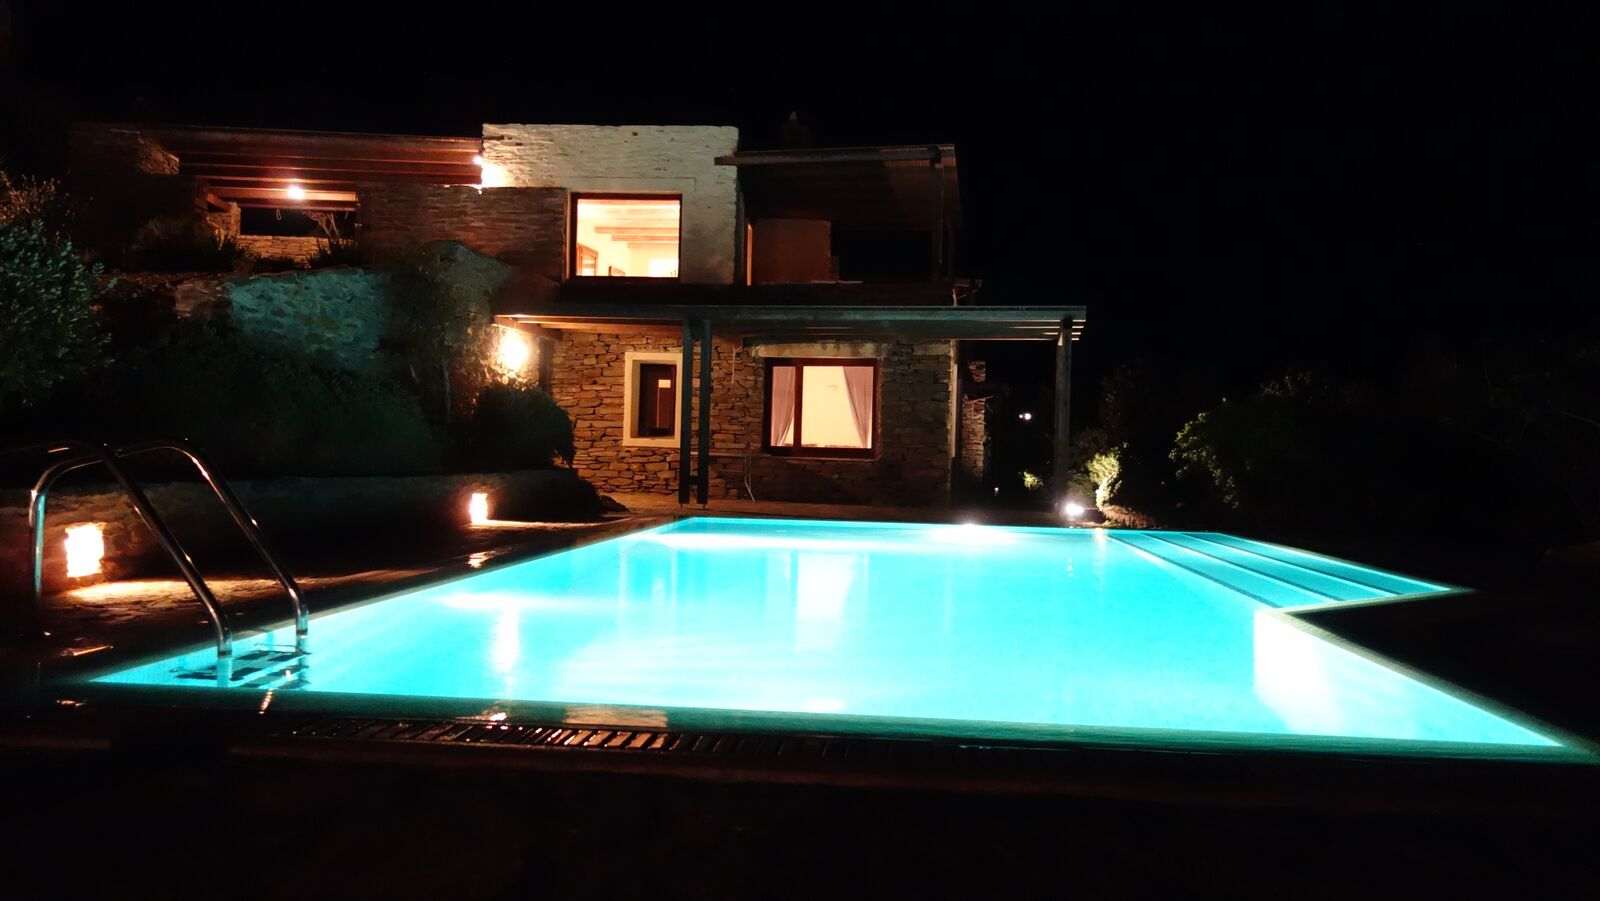 Greece. Cyclades. Kea. Koundouros. House for sale.